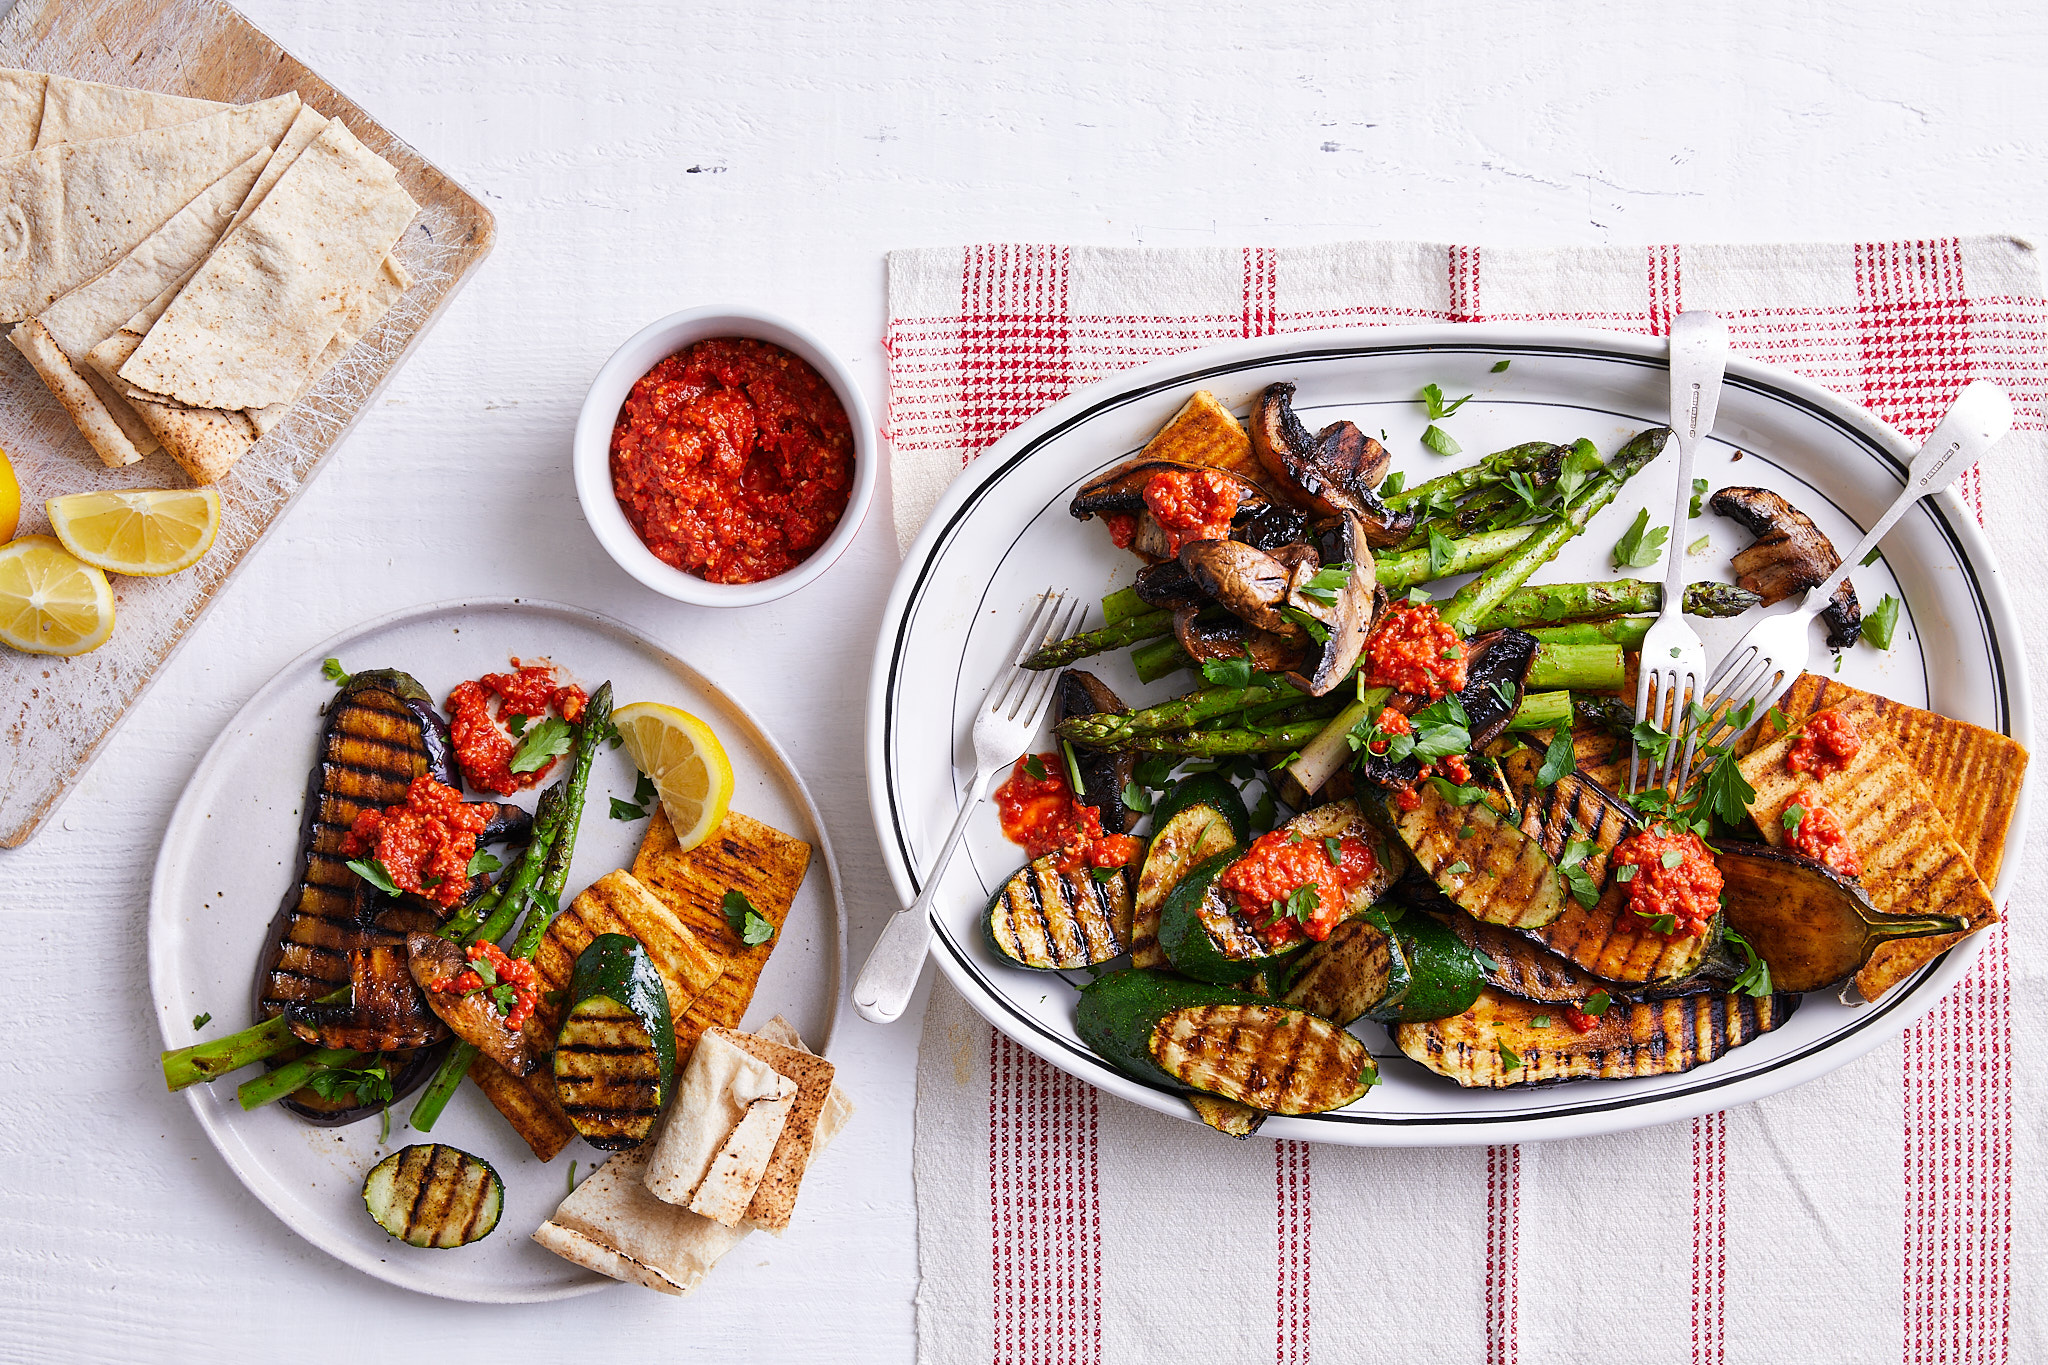 Chargrilled tofu and vegetables with romesco